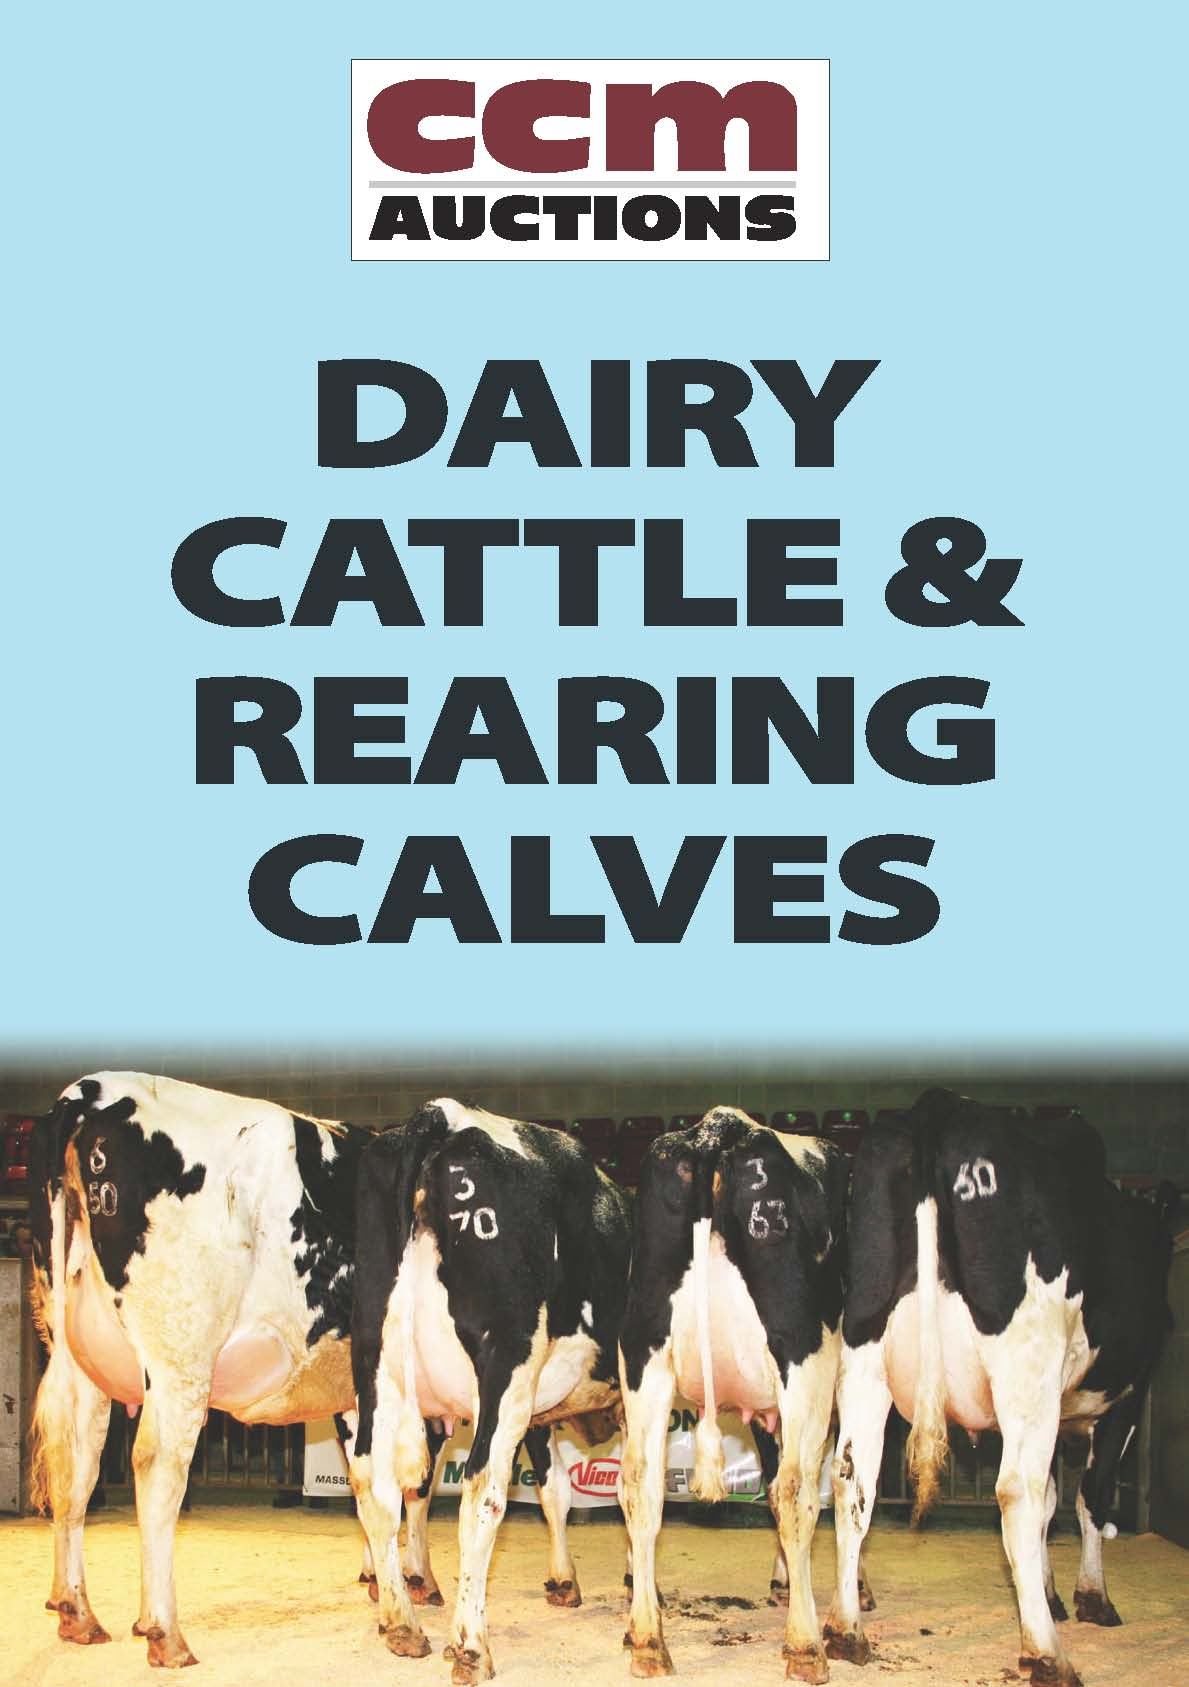 DAIRY & CALVES - MONDAY 28TH SEPTEMBER 2015